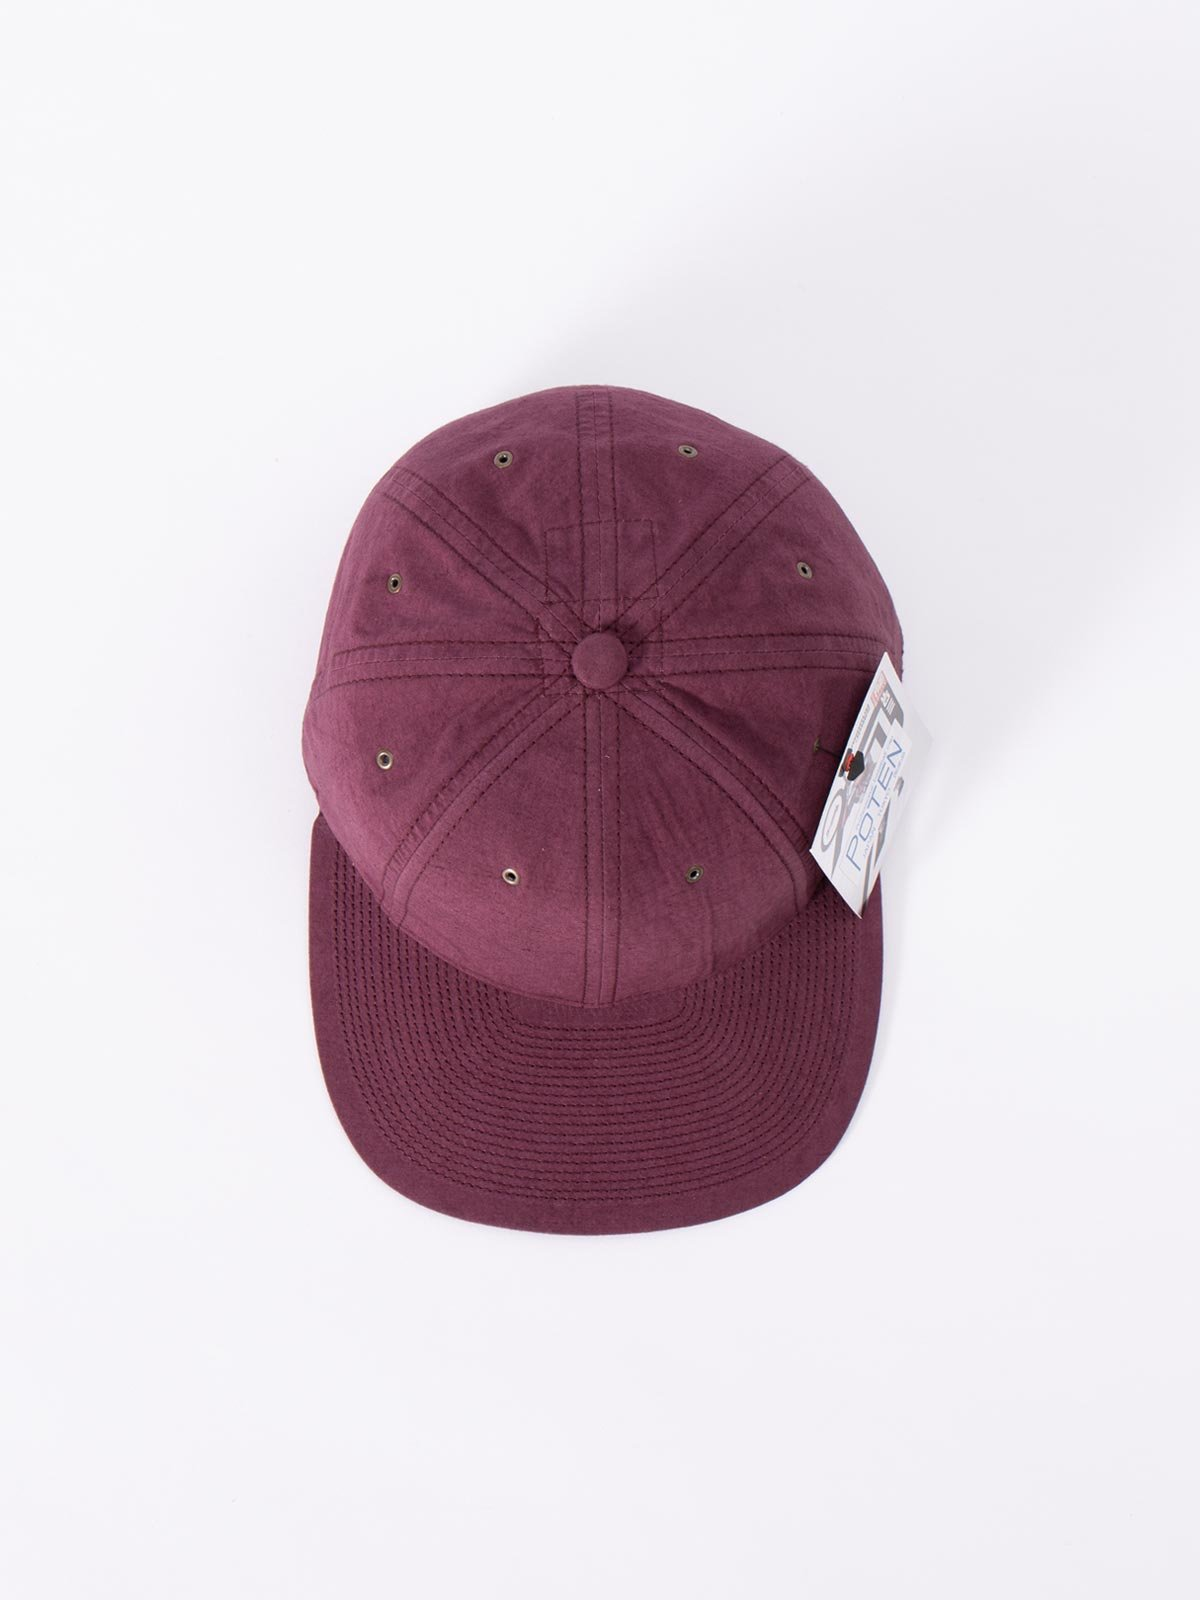 WINE SPECIAL DYED COTTON / LINEN CAP - Image 3